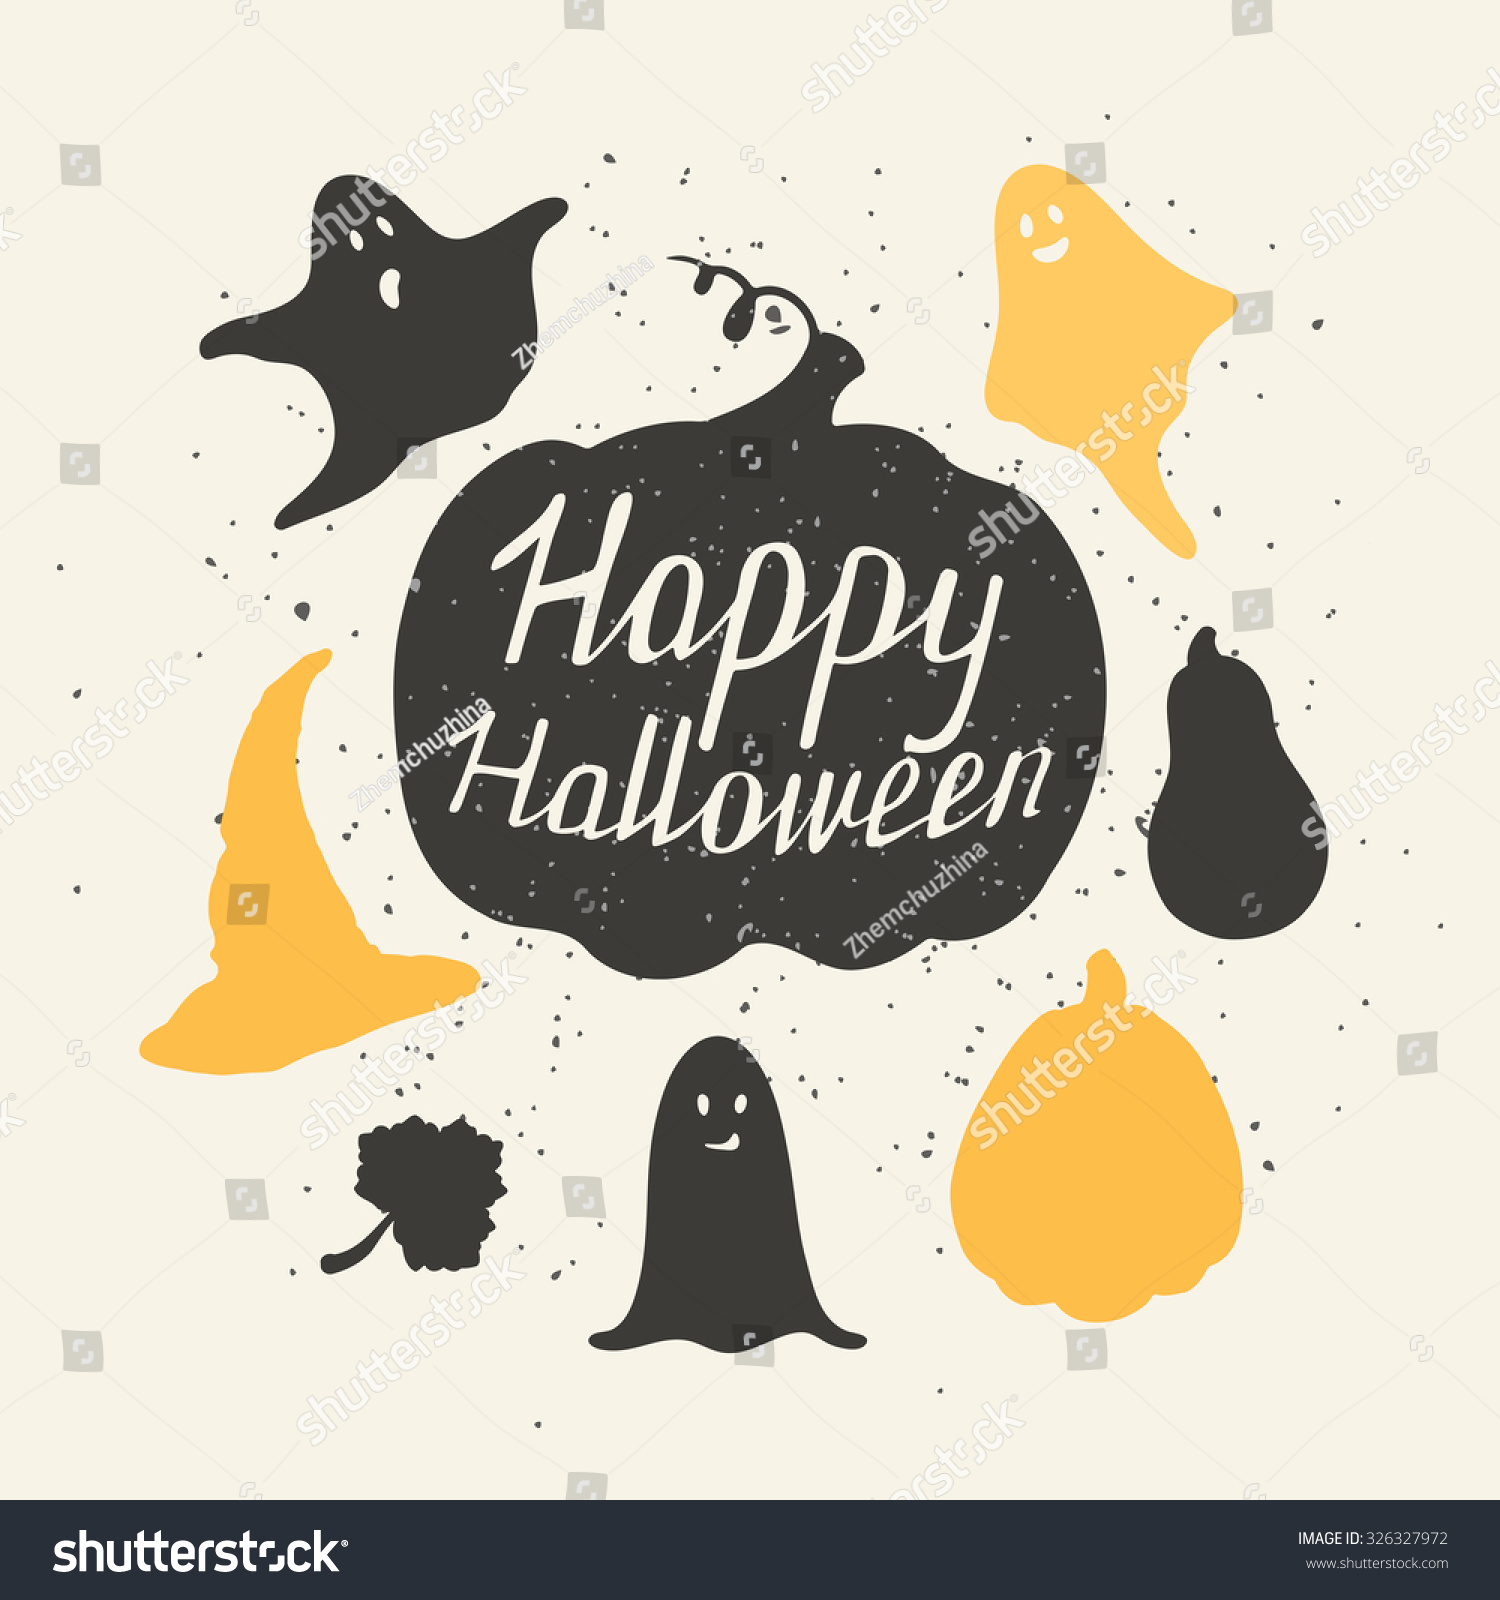 Hand Drawn Halloween Silhouettes Collection Pumpkin Stock Vector ...